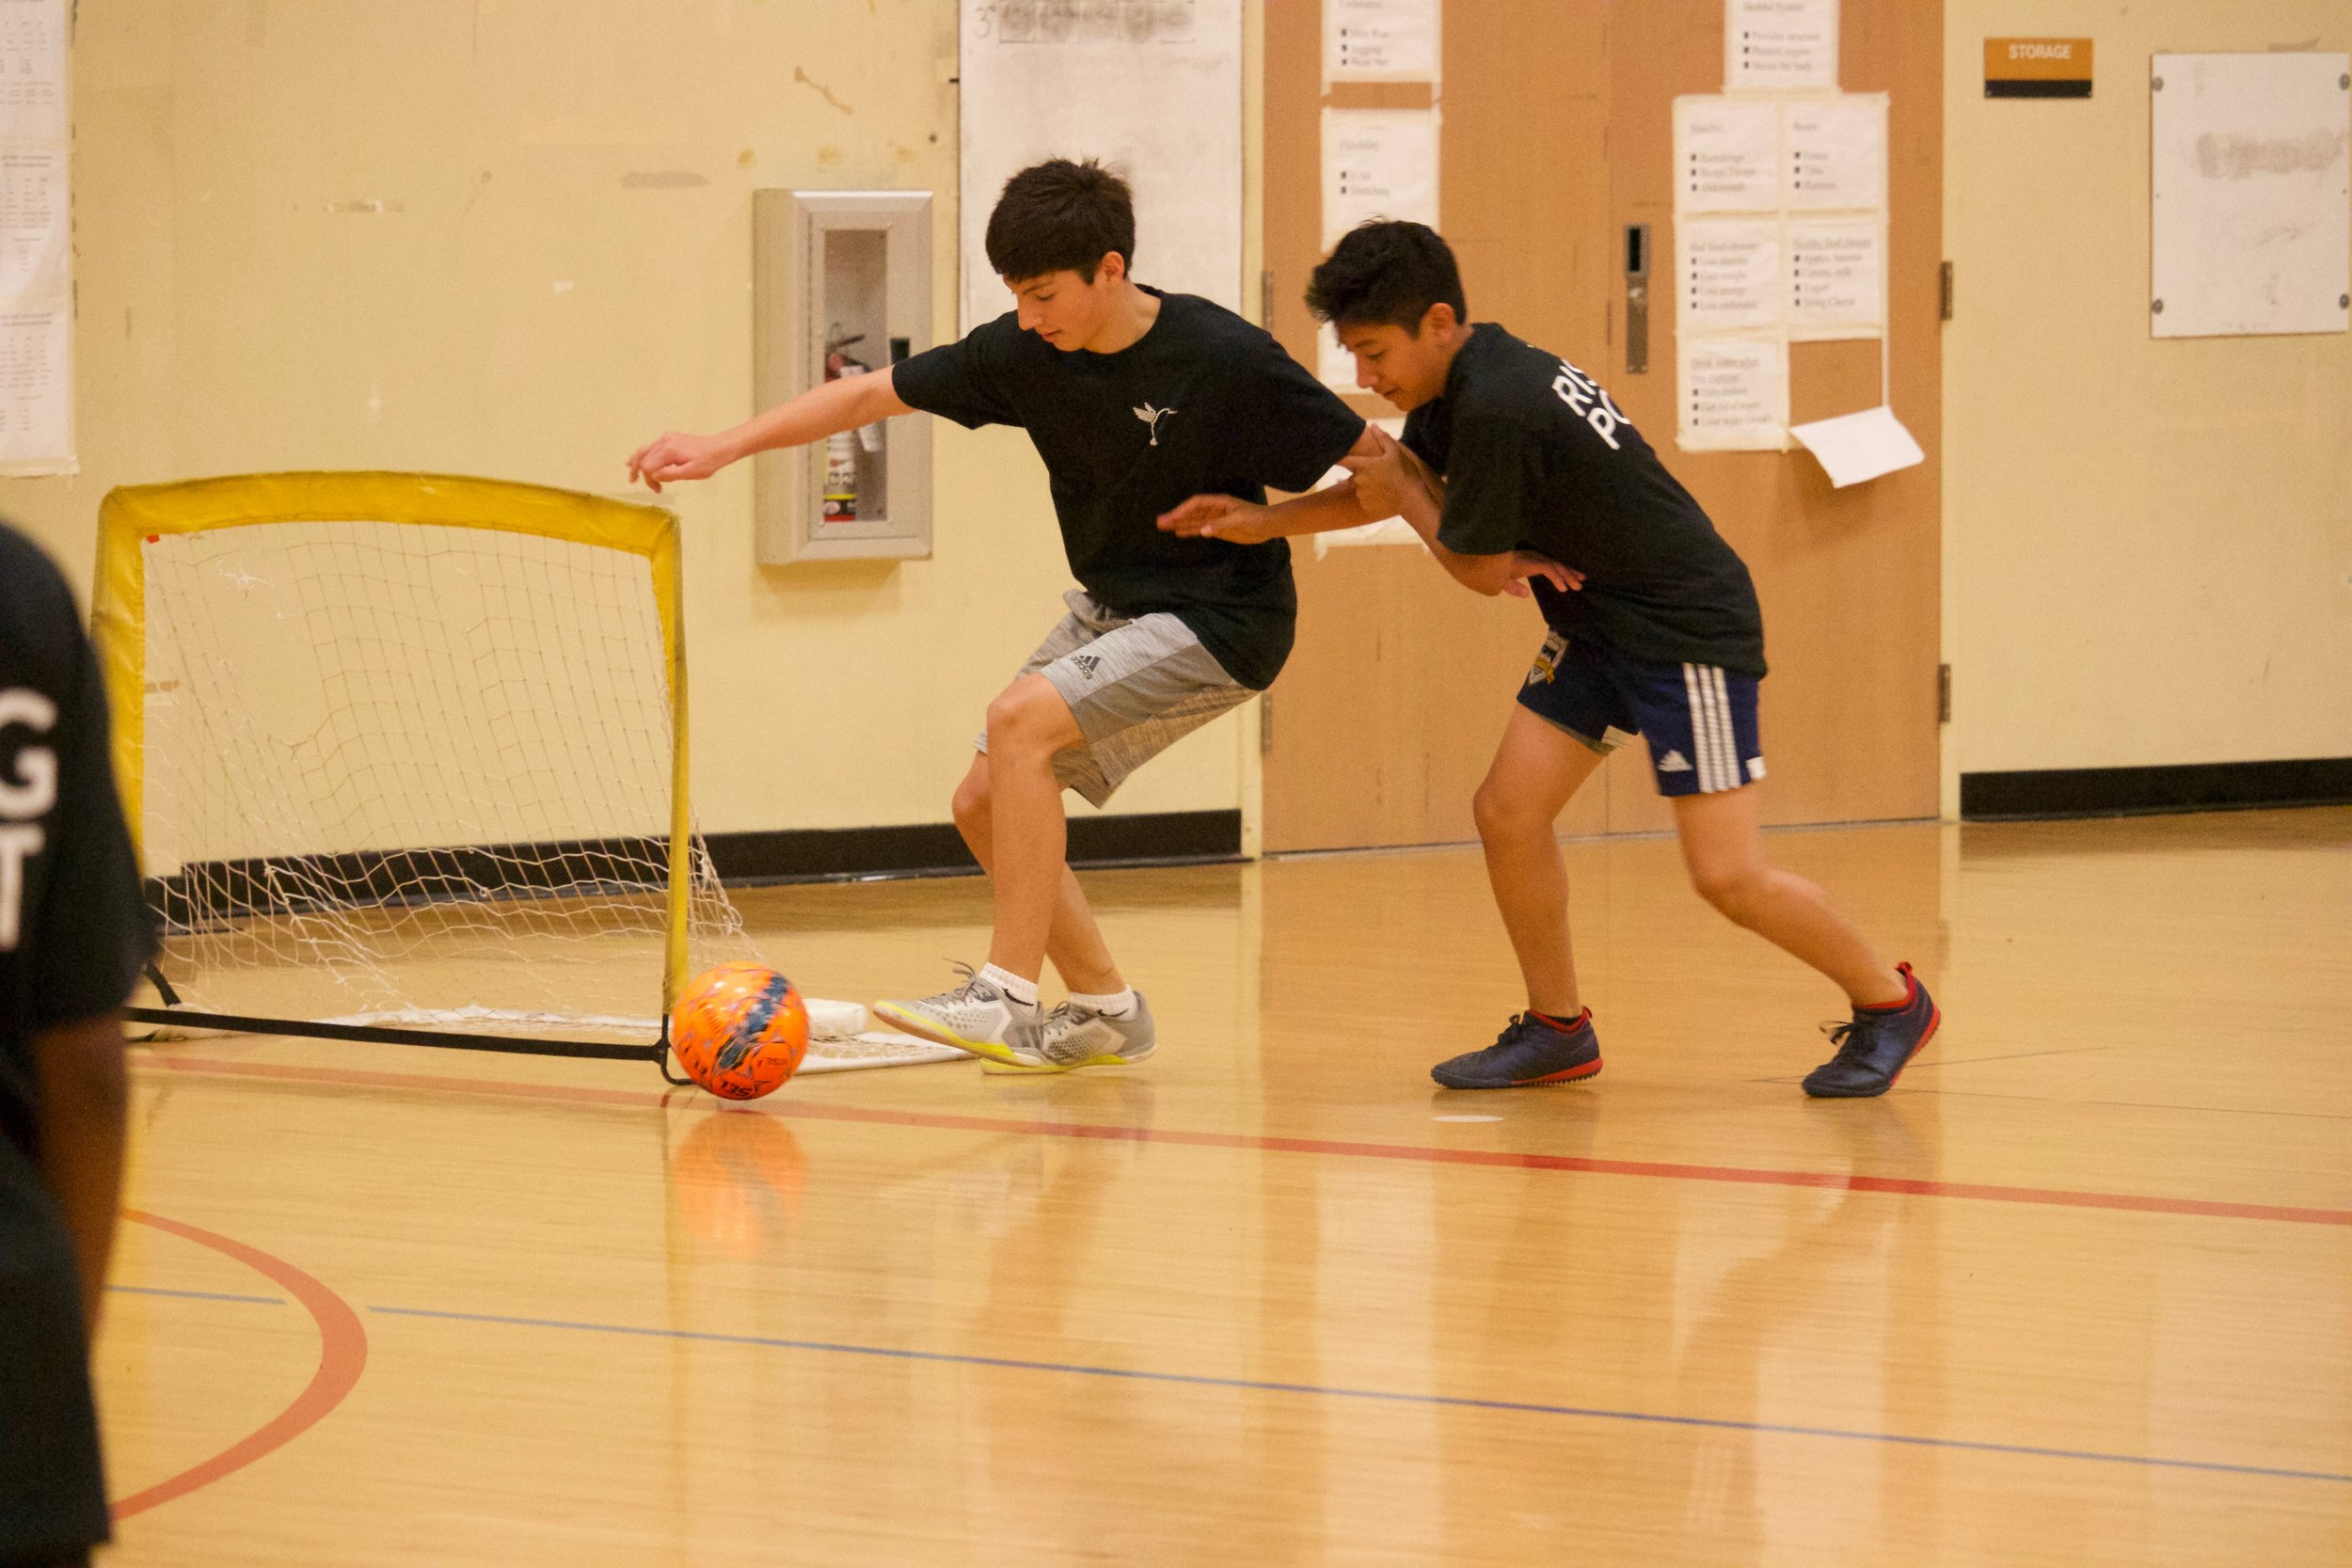 Futsal is a faster paced version of soccer that is played on a hard court using a smaller and heavier ball than the outdoor game. During these sessions, athletes are challenged to make decisions at speed in a fun and competitive environment that is highly conducive to    nurturing awareness, intentionality, and responsiveness (AIR).